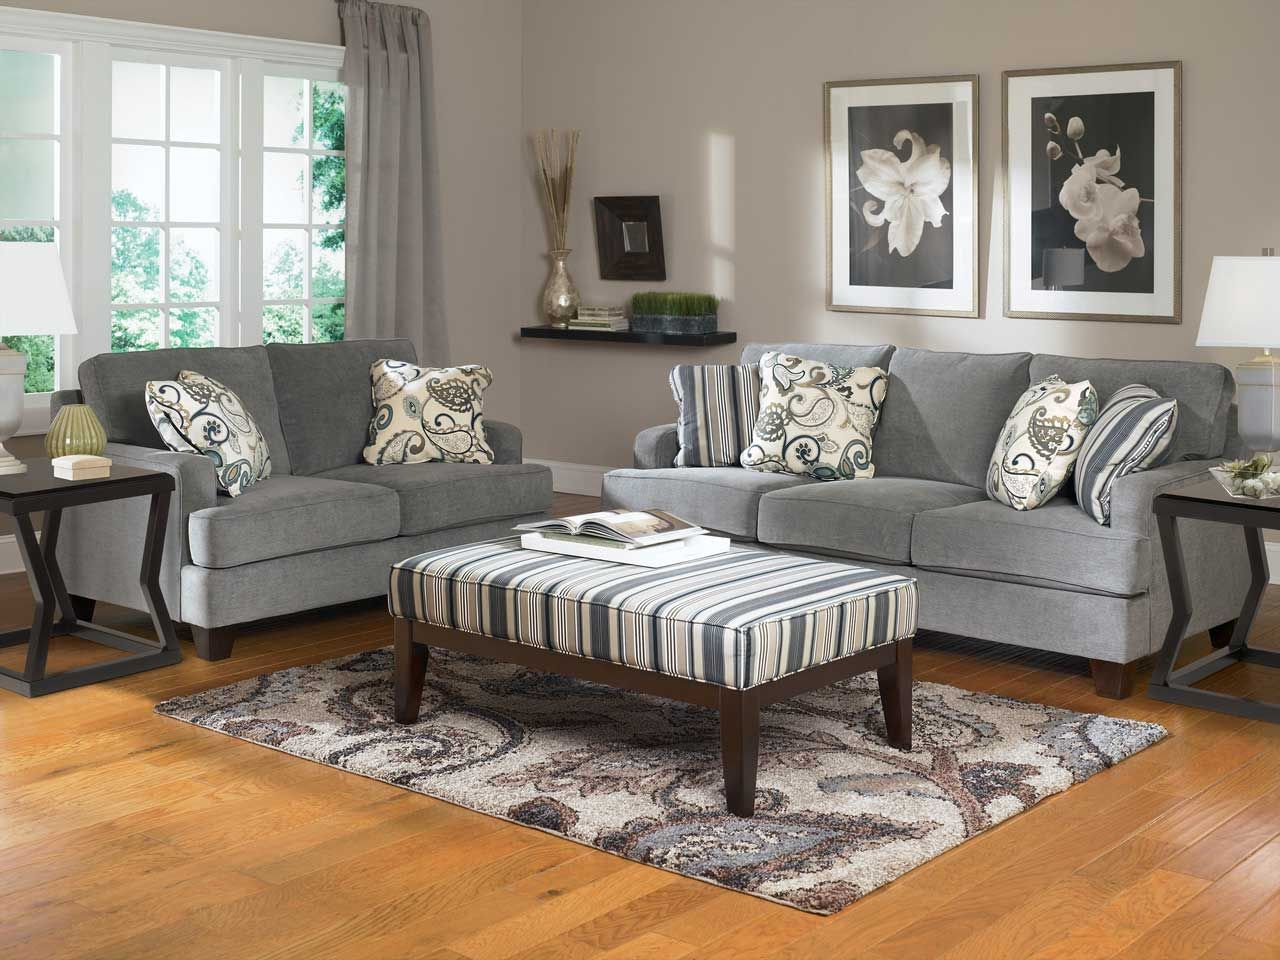 Living Room Design With Grey Sofa Impressive Take A Look In The Following Living Rooms With Gray Elements Review